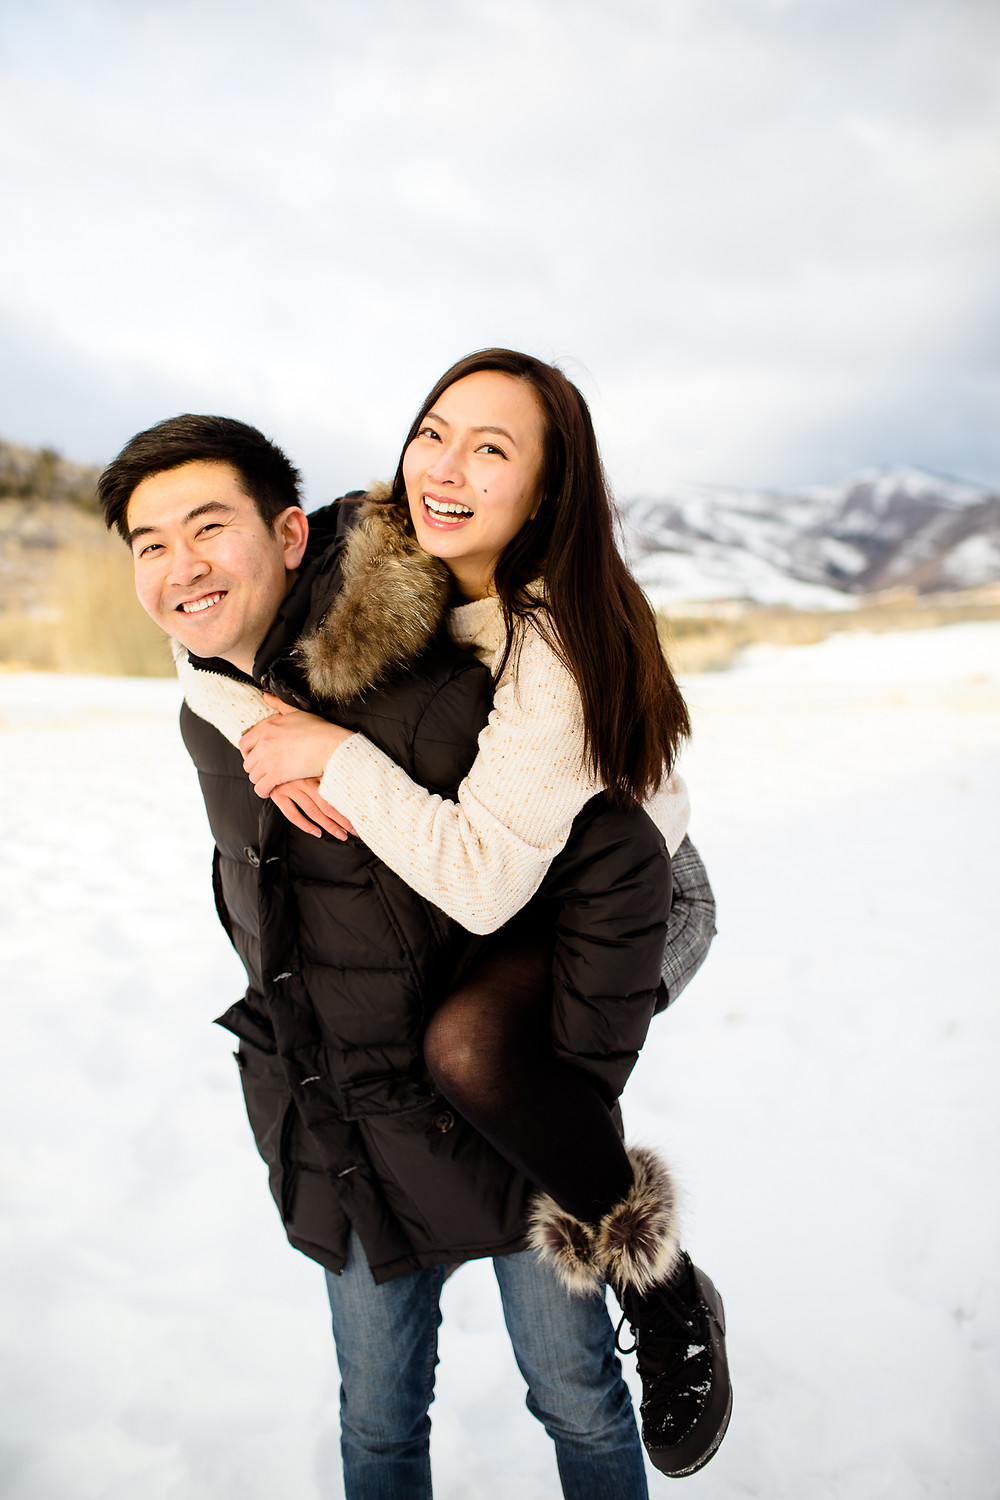 man gives woman a piggyback ride in park city utah